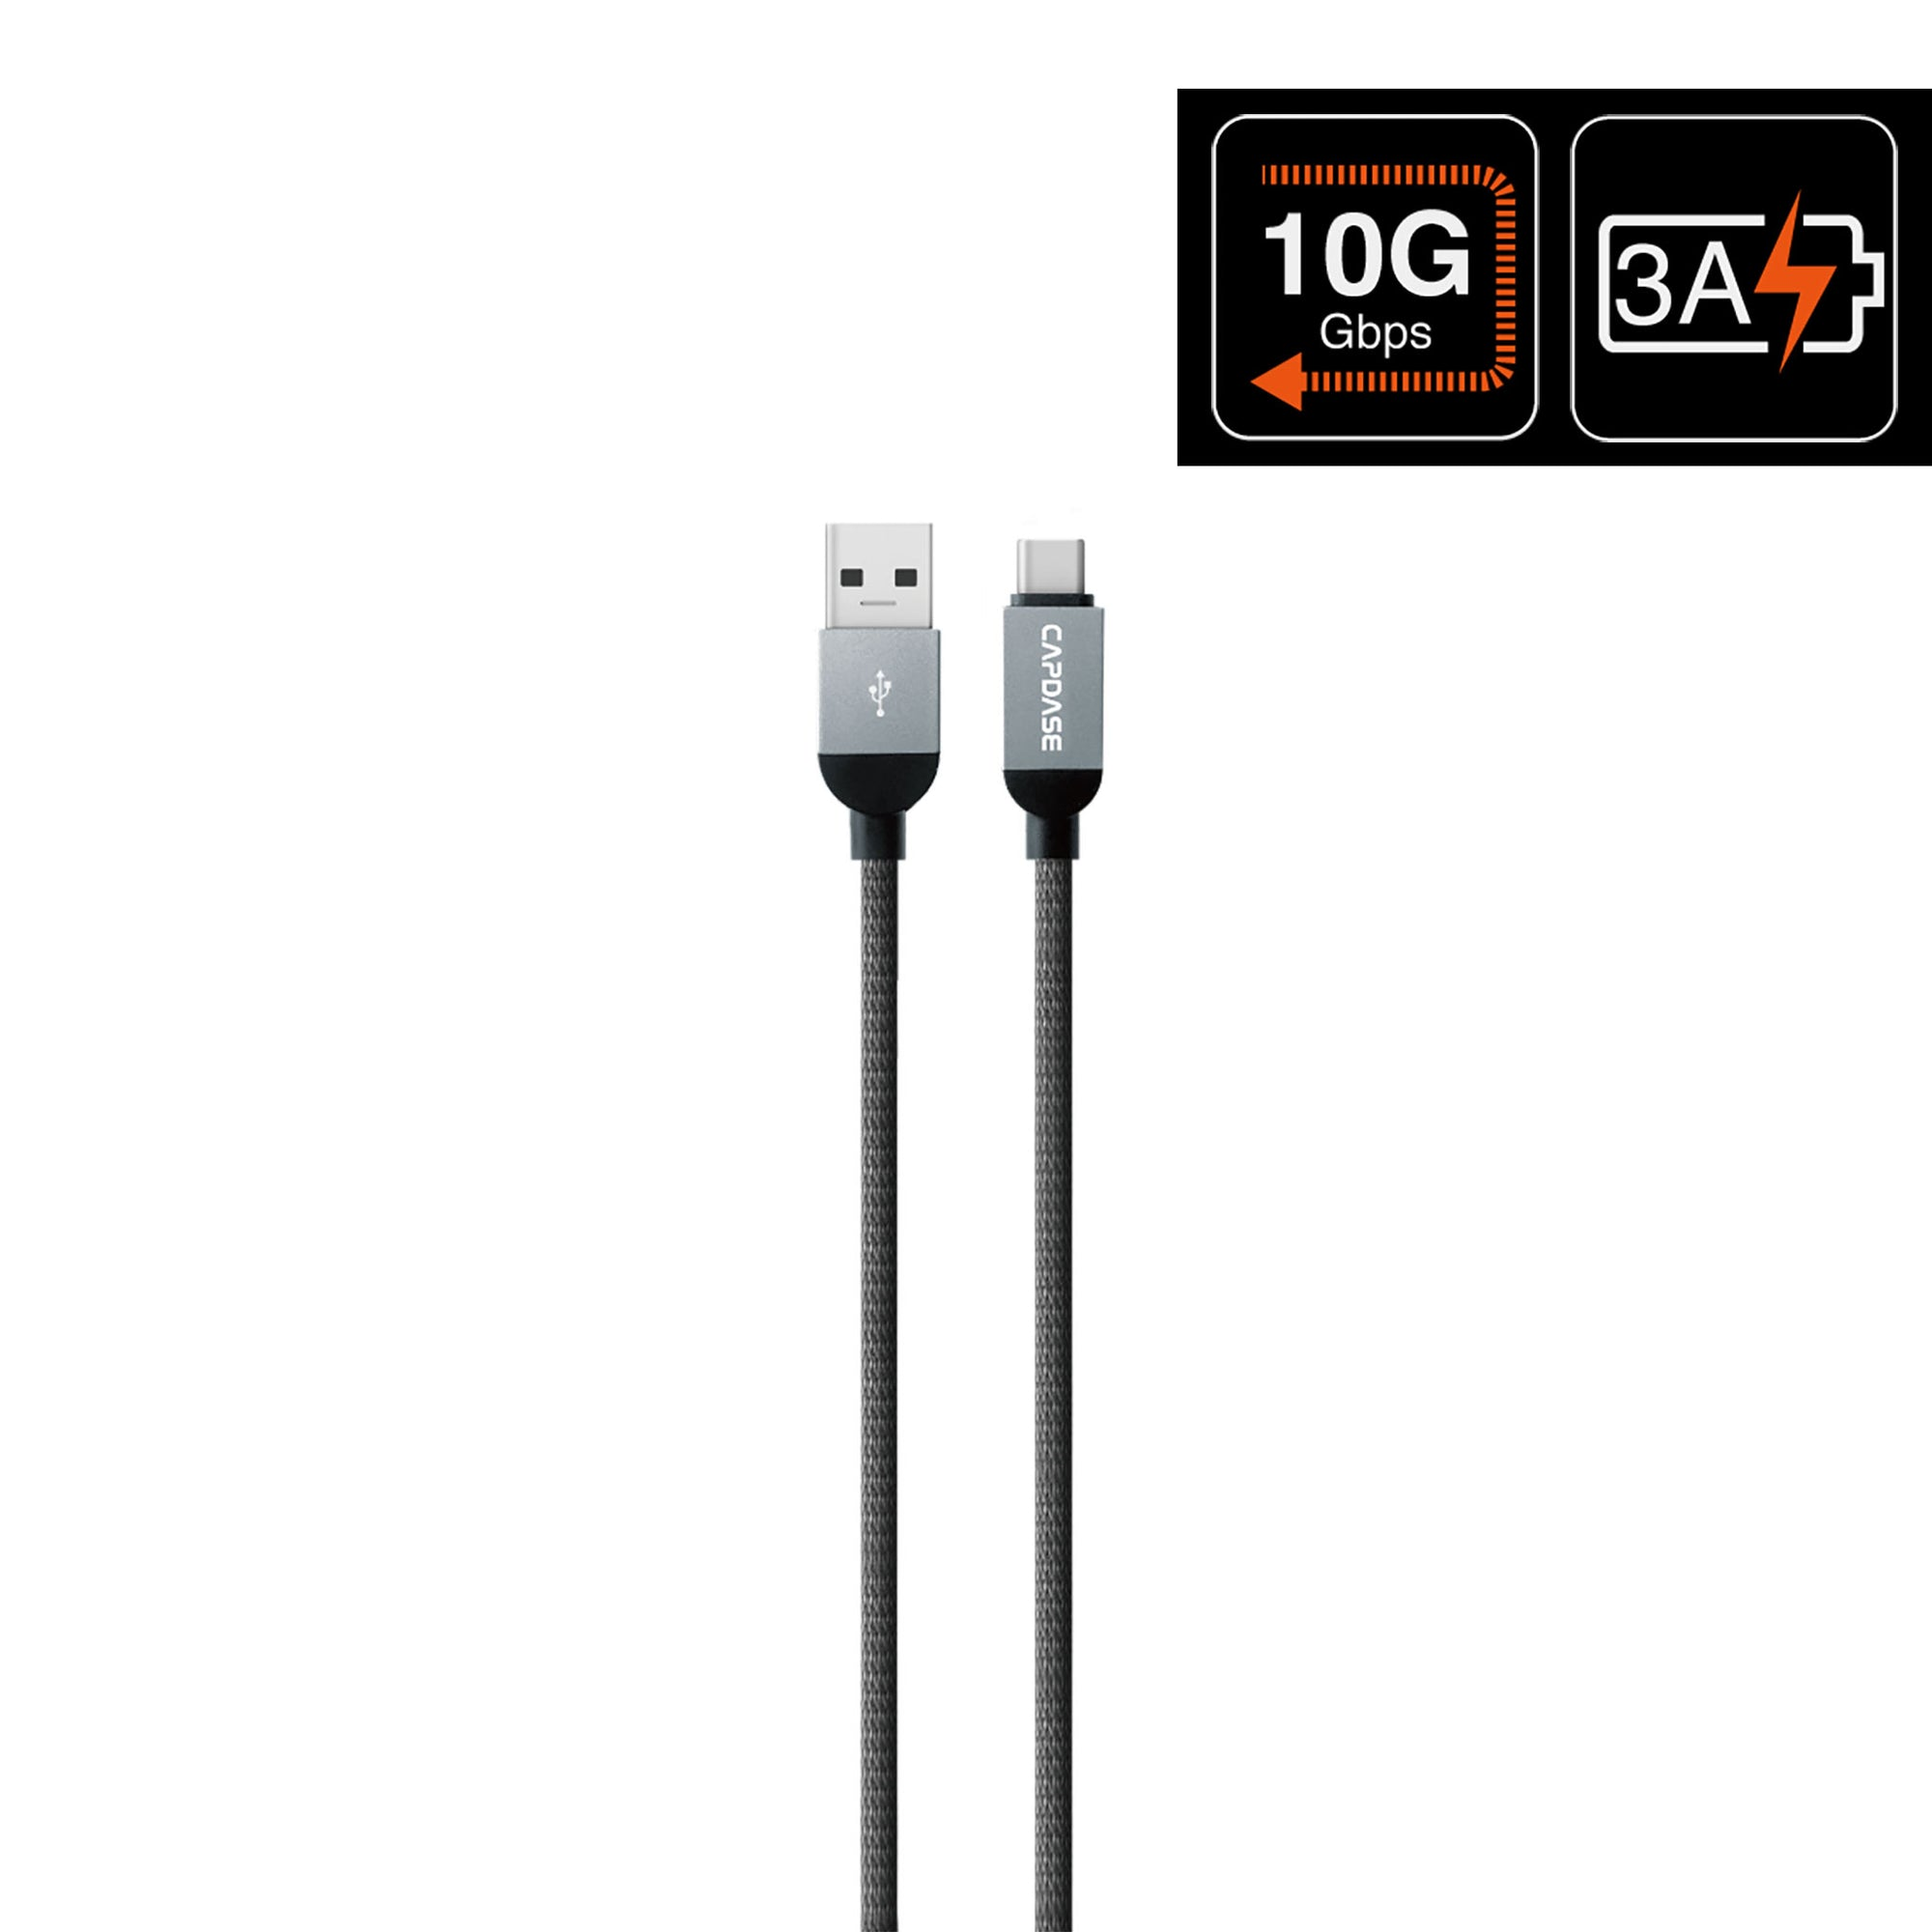 METALLIC CA10G USB-C To USB-A Sync and Charge Cable 1M (10 Gbps)